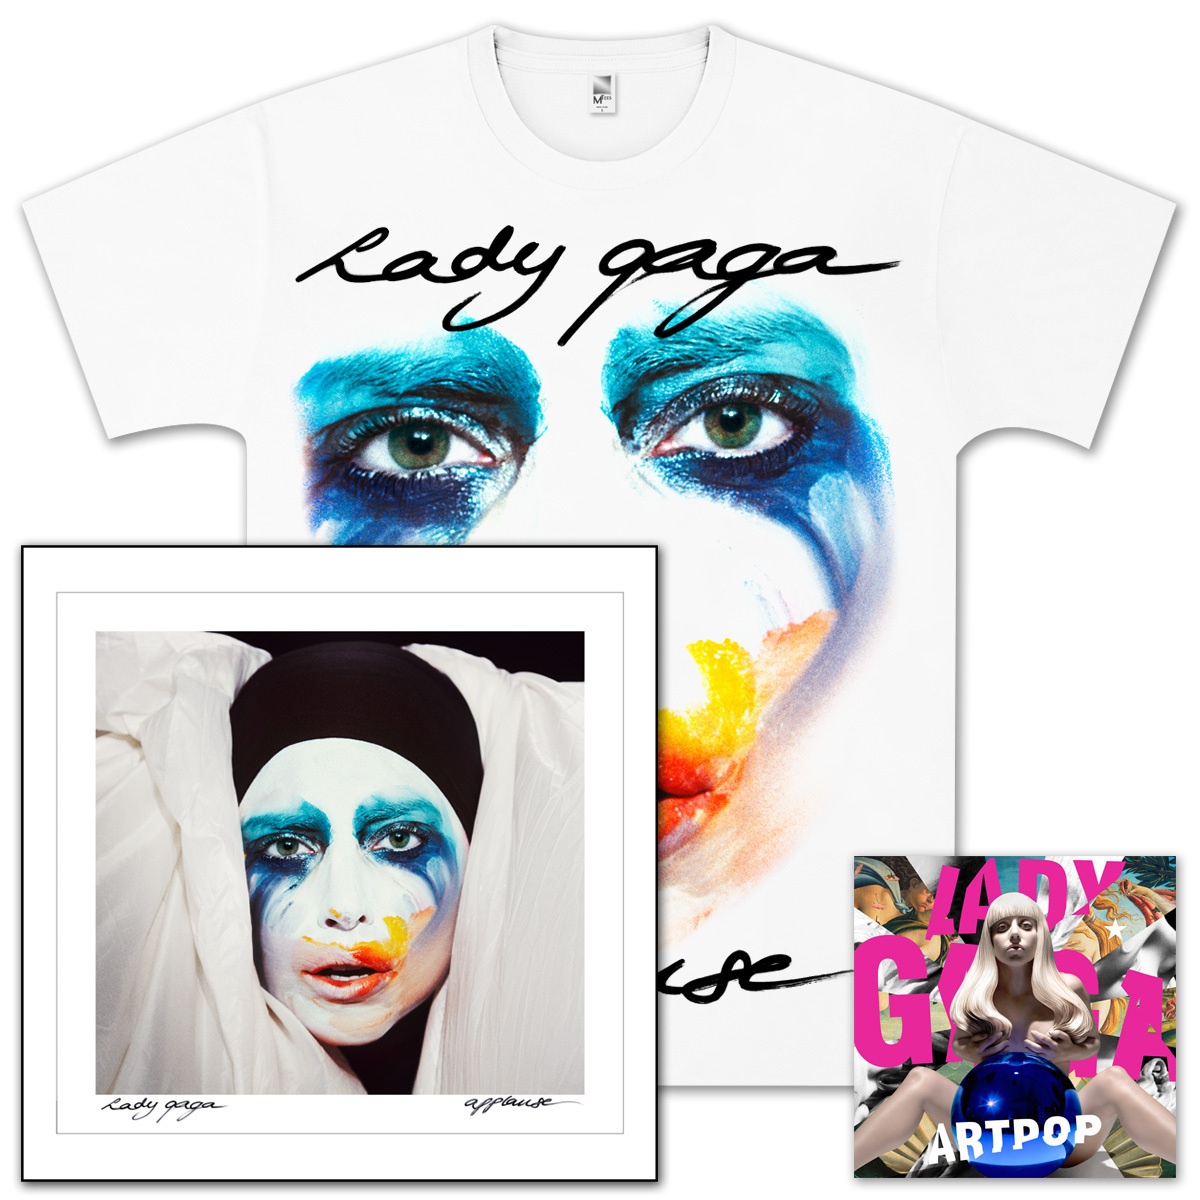 ARTPOP - Deluxe Explicit Version Download Bundle (U.S. Customers Only)